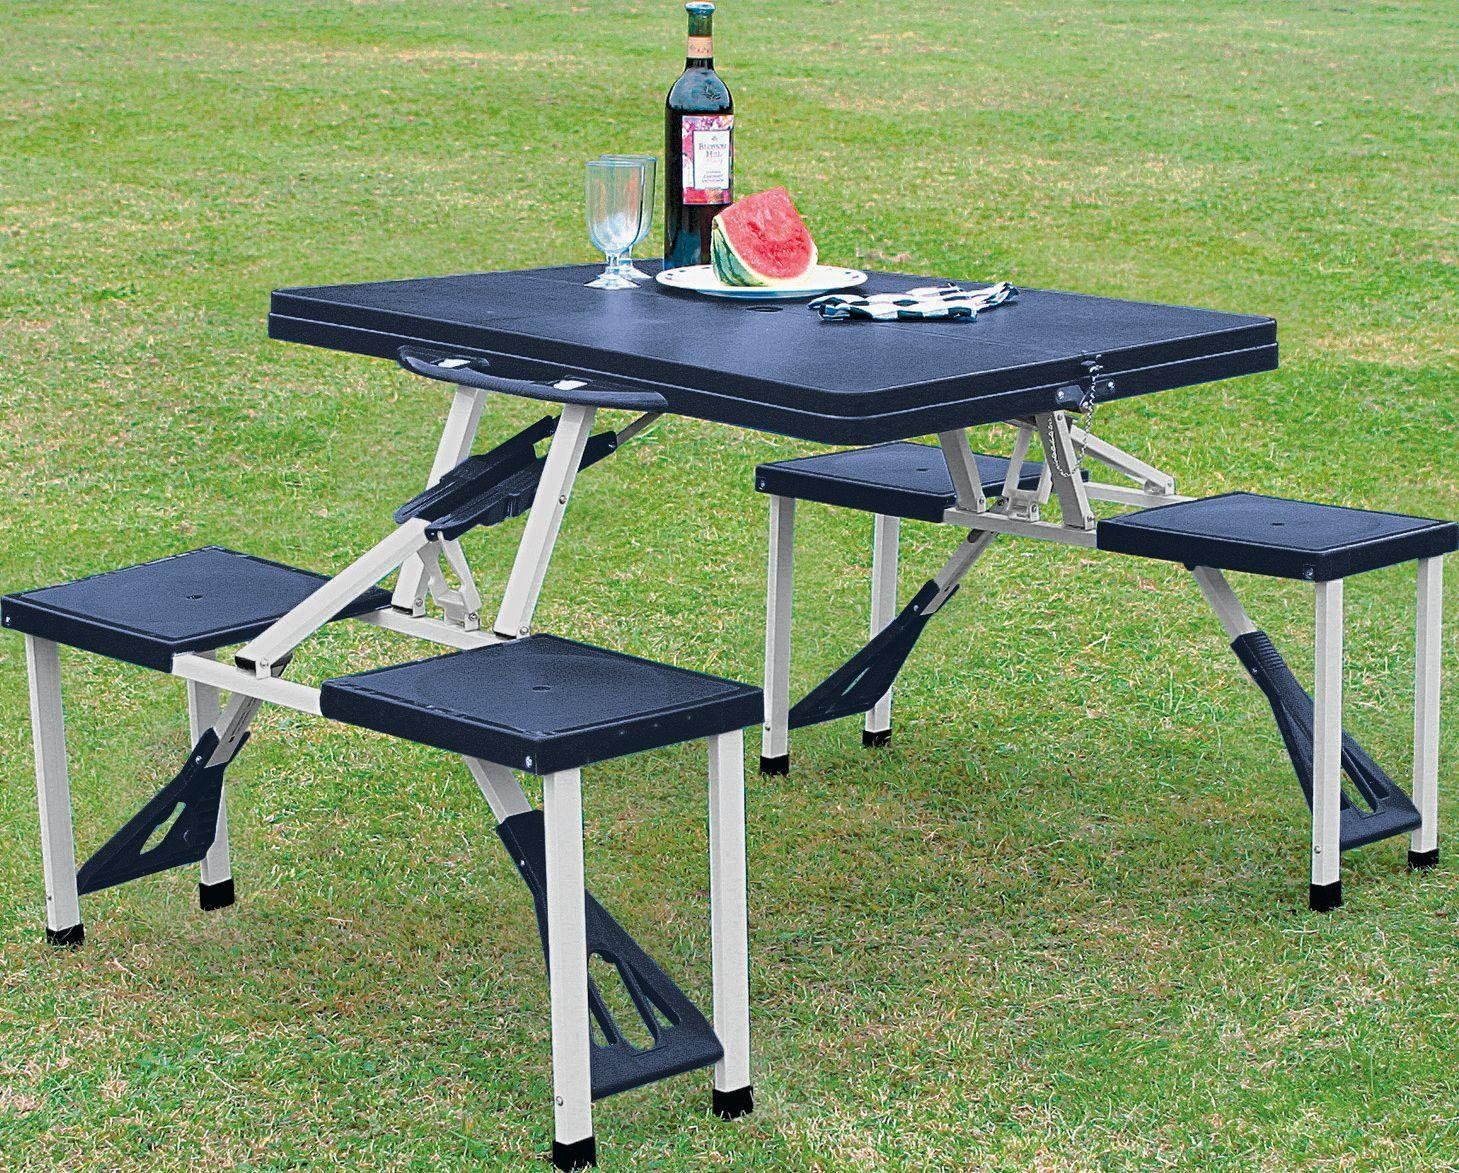 Things to consider when getting folding camping table and chairs